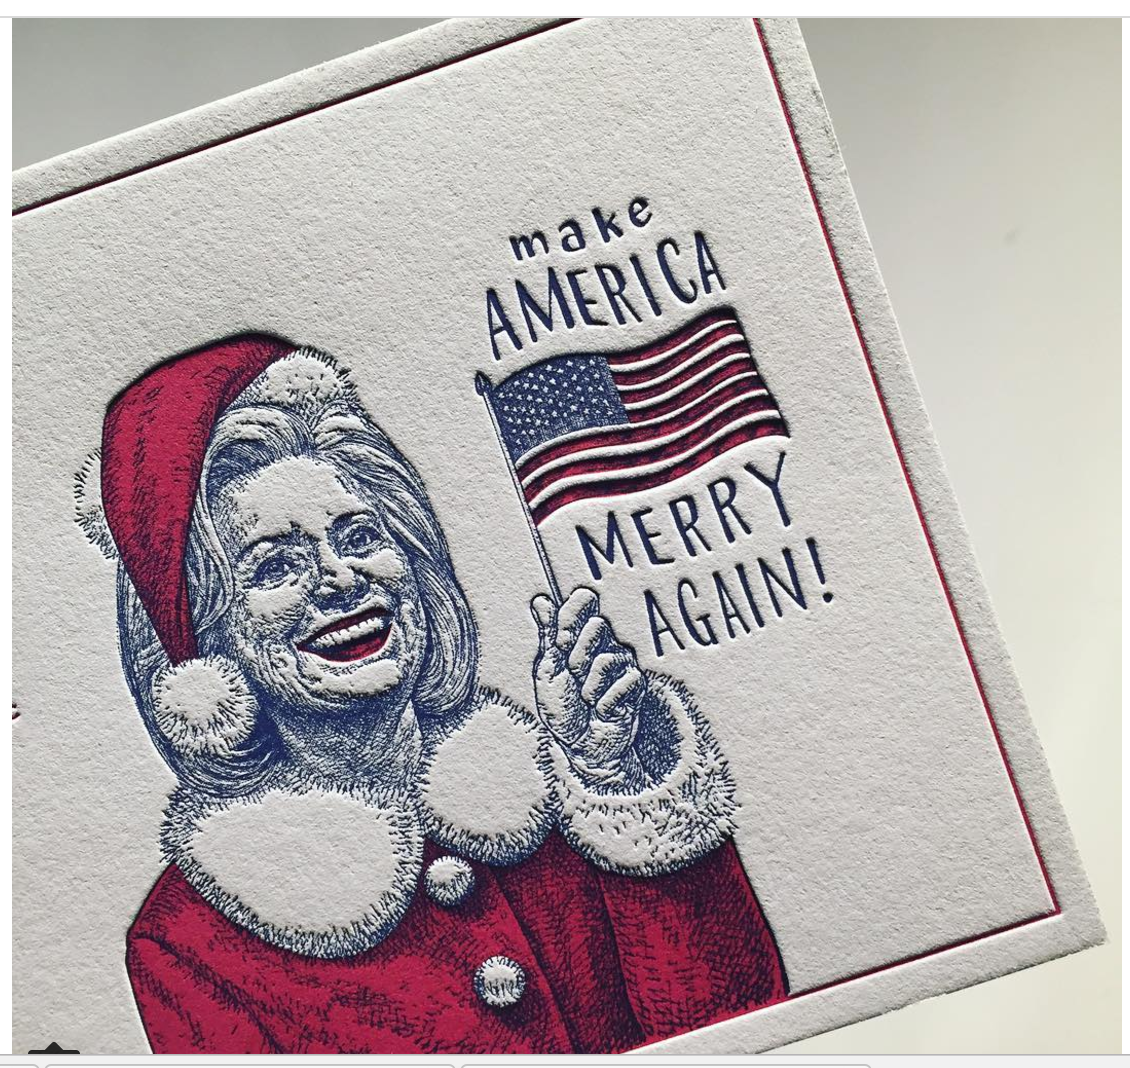 """We are sad to have to cancel our annual silly party. We planned it months ago as a   @hillaryclinton  victory party. I had personally cast the all-male, body-painted American flag tableau.     As Hillary said, """"Let us have faith in each other, let us not grow weary, let us not lose heart, for there are more seasons to come."""" And there will be more parties to come. Just not this year."""